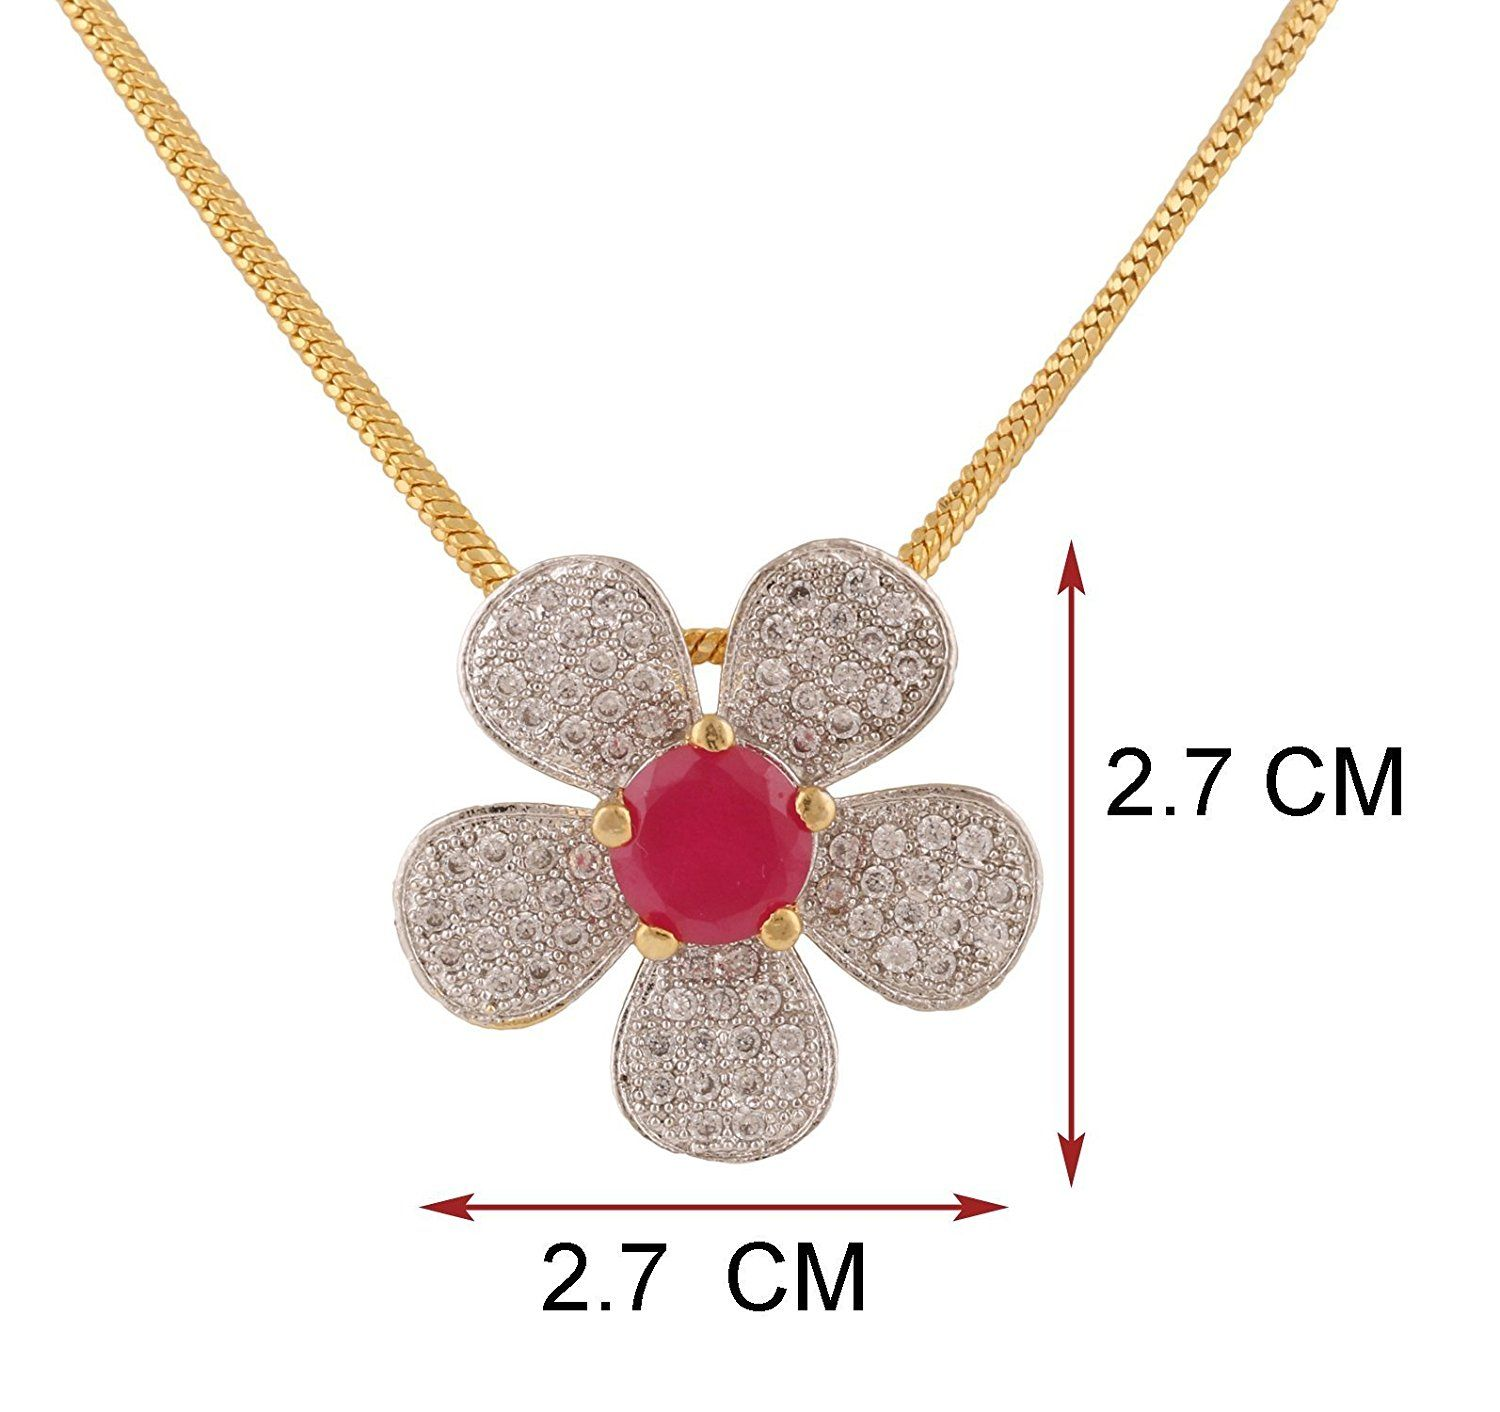 Swasti jewels flower shaped zircon cz fashion jewelry set pendant